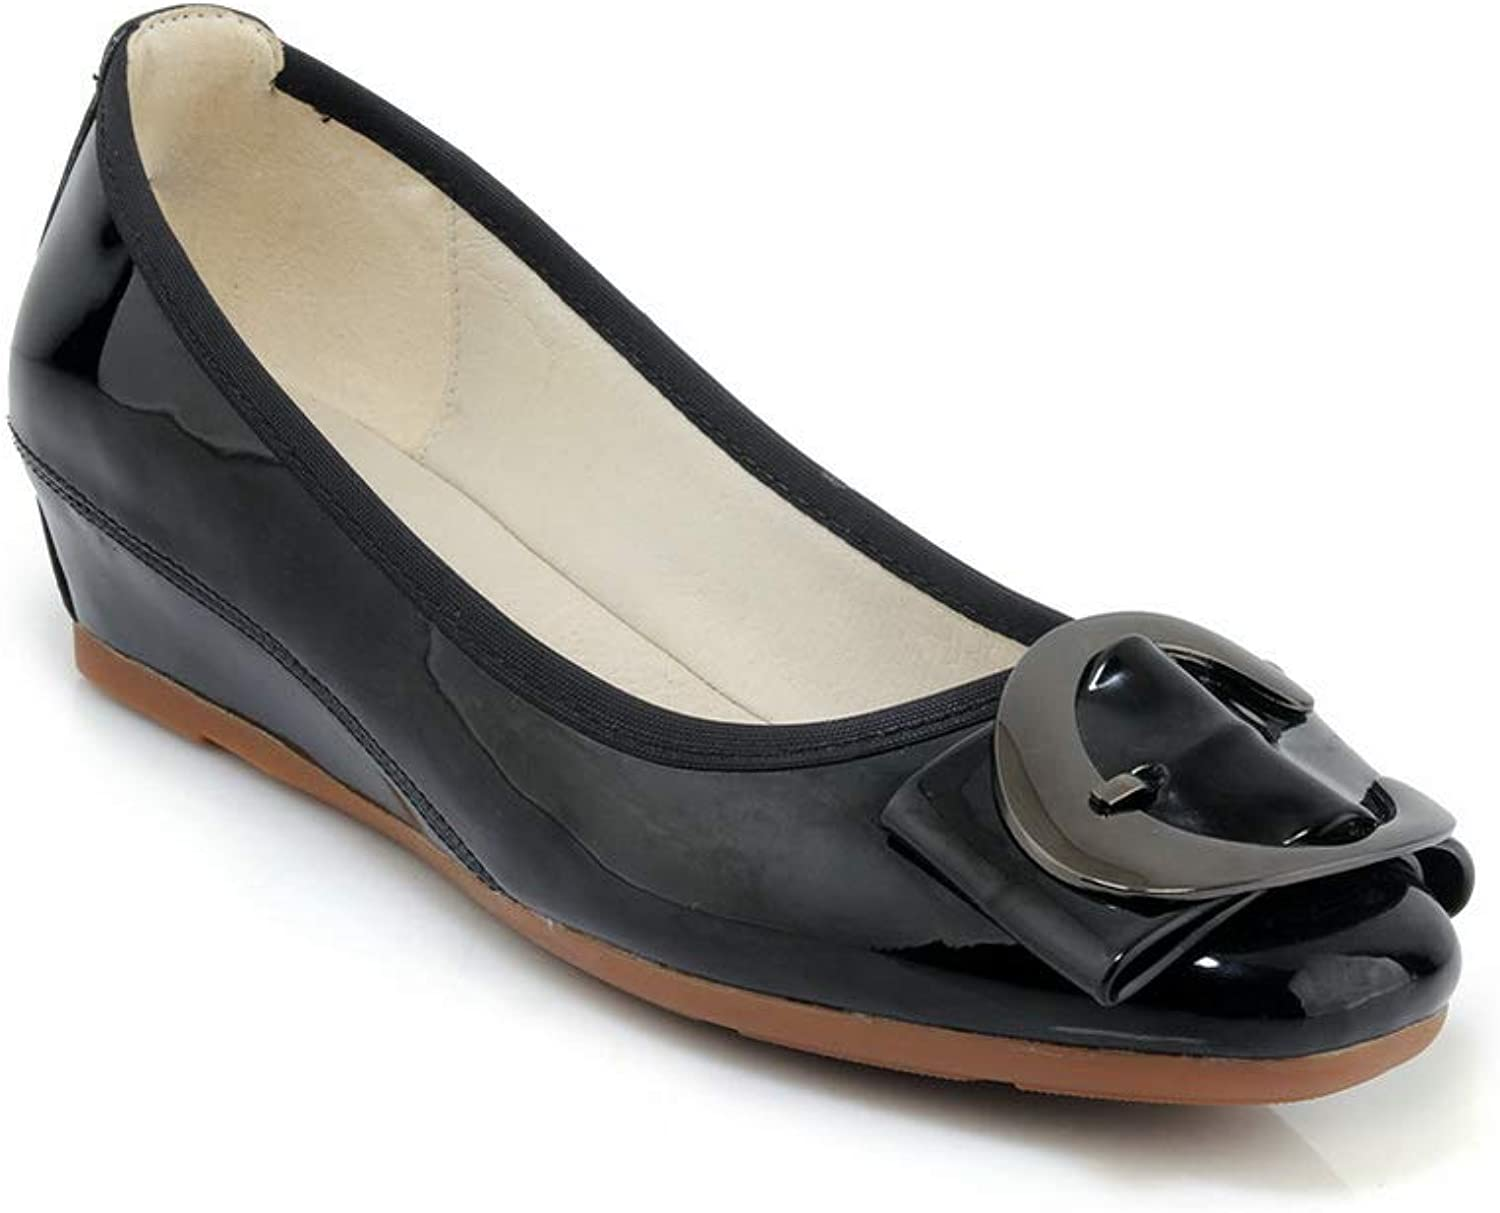 AN Womens Metal Buckles Wedges Patent-Leather Pumps shoes DGU00754